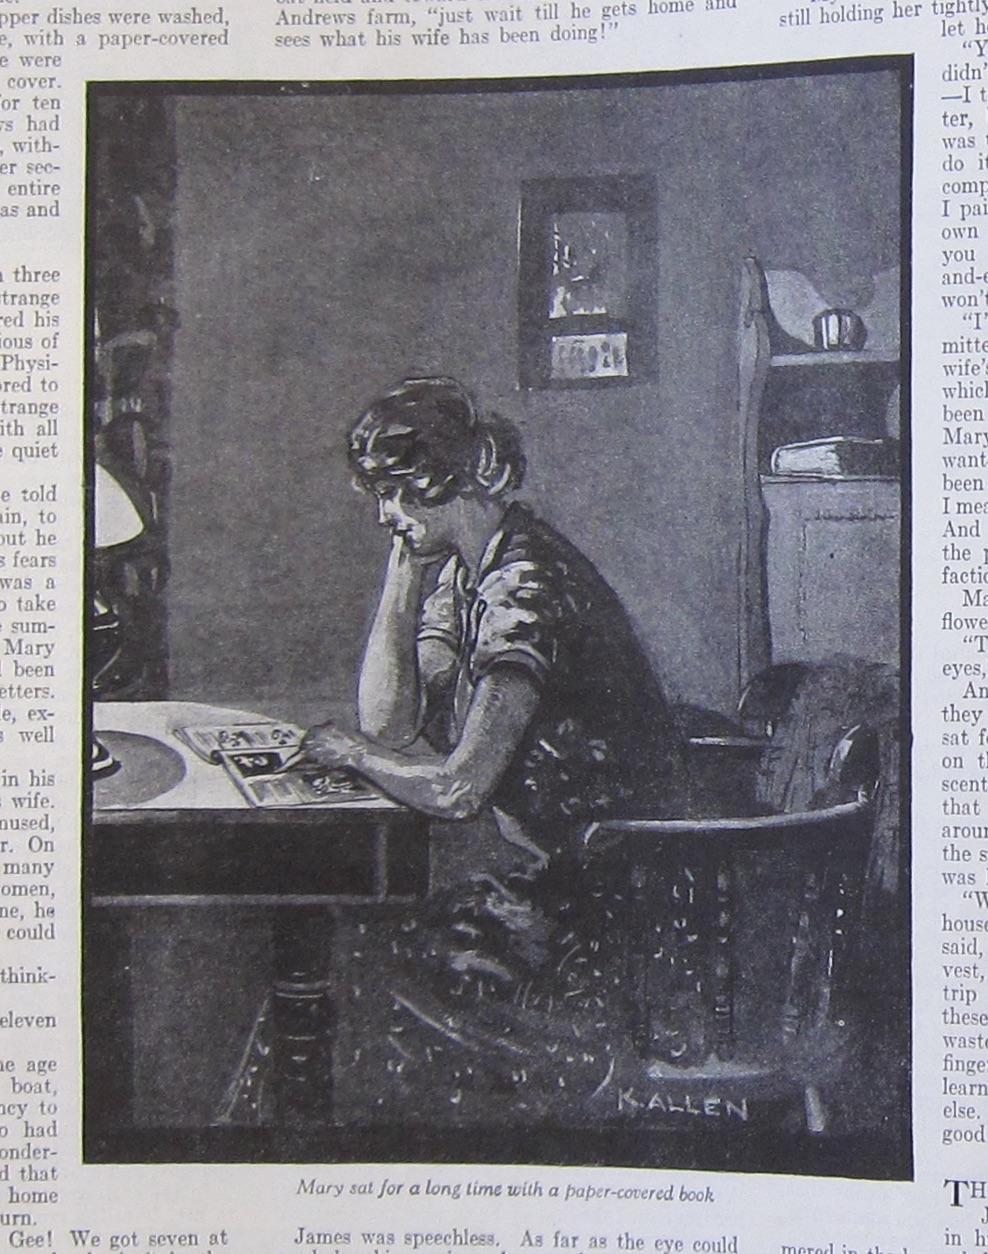 Illustration by Kathleen Allen shows three kinds of print in the domestic space: a calendar, a hardcover book, and a magazine. Western Home Monthly, October 1926, 18. Photo by the author from copy held in BAnQ, Montreal.